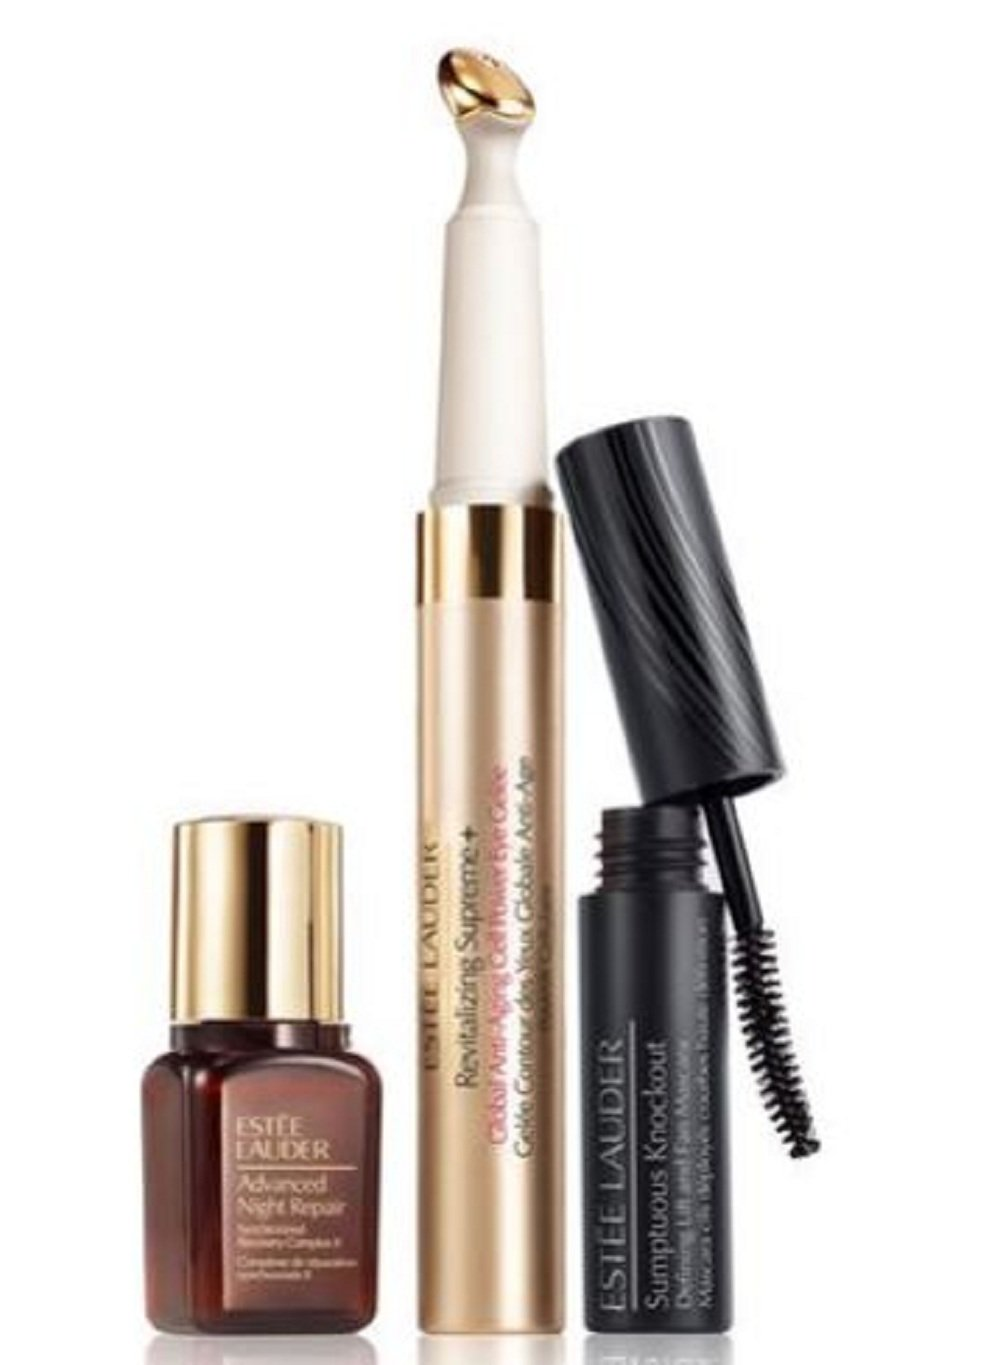 Exklusive Lauder Estée Lauder BEAUTIFUL Eyes: Anti-Aging Geschenk ...